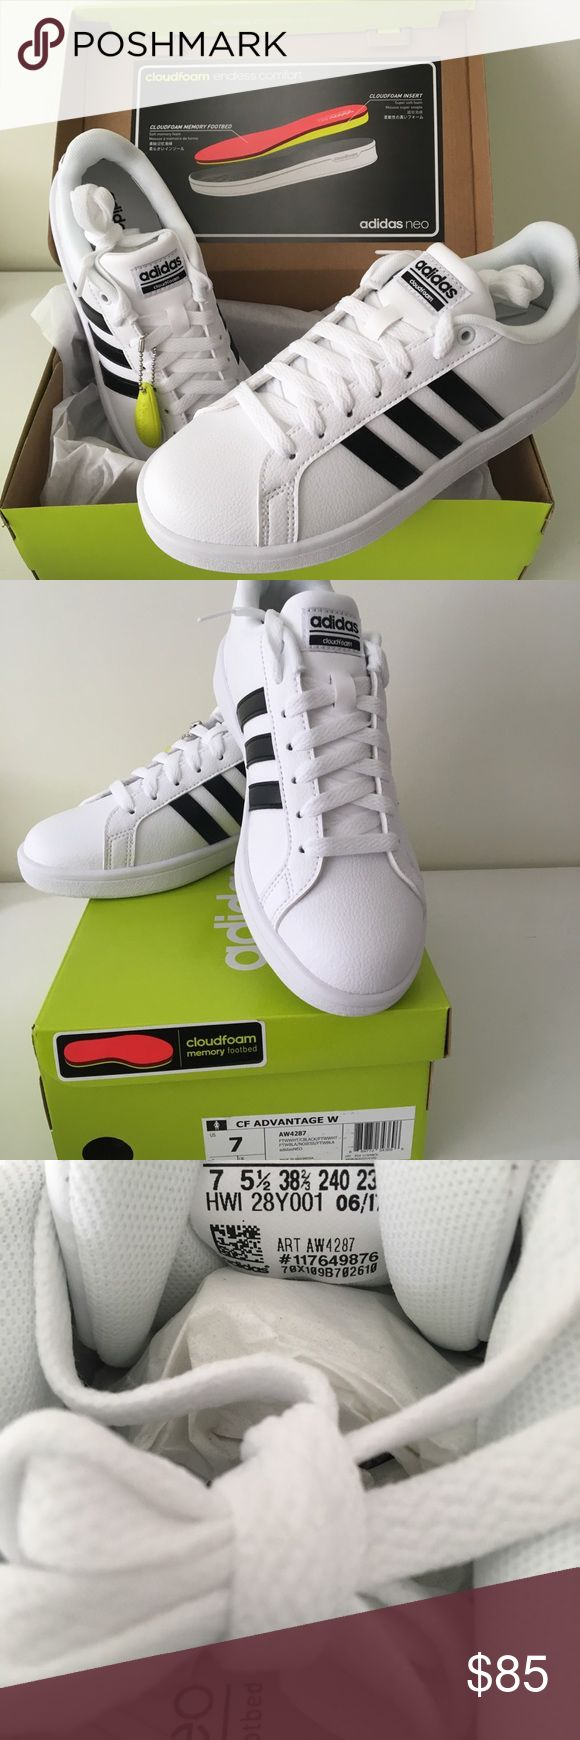 Cloudfoam White Adidas Brand new cloudfoam white Adidas shoes Size 7 Never used! In excellent condition Still in box adidas Shoes Athletic Shoes